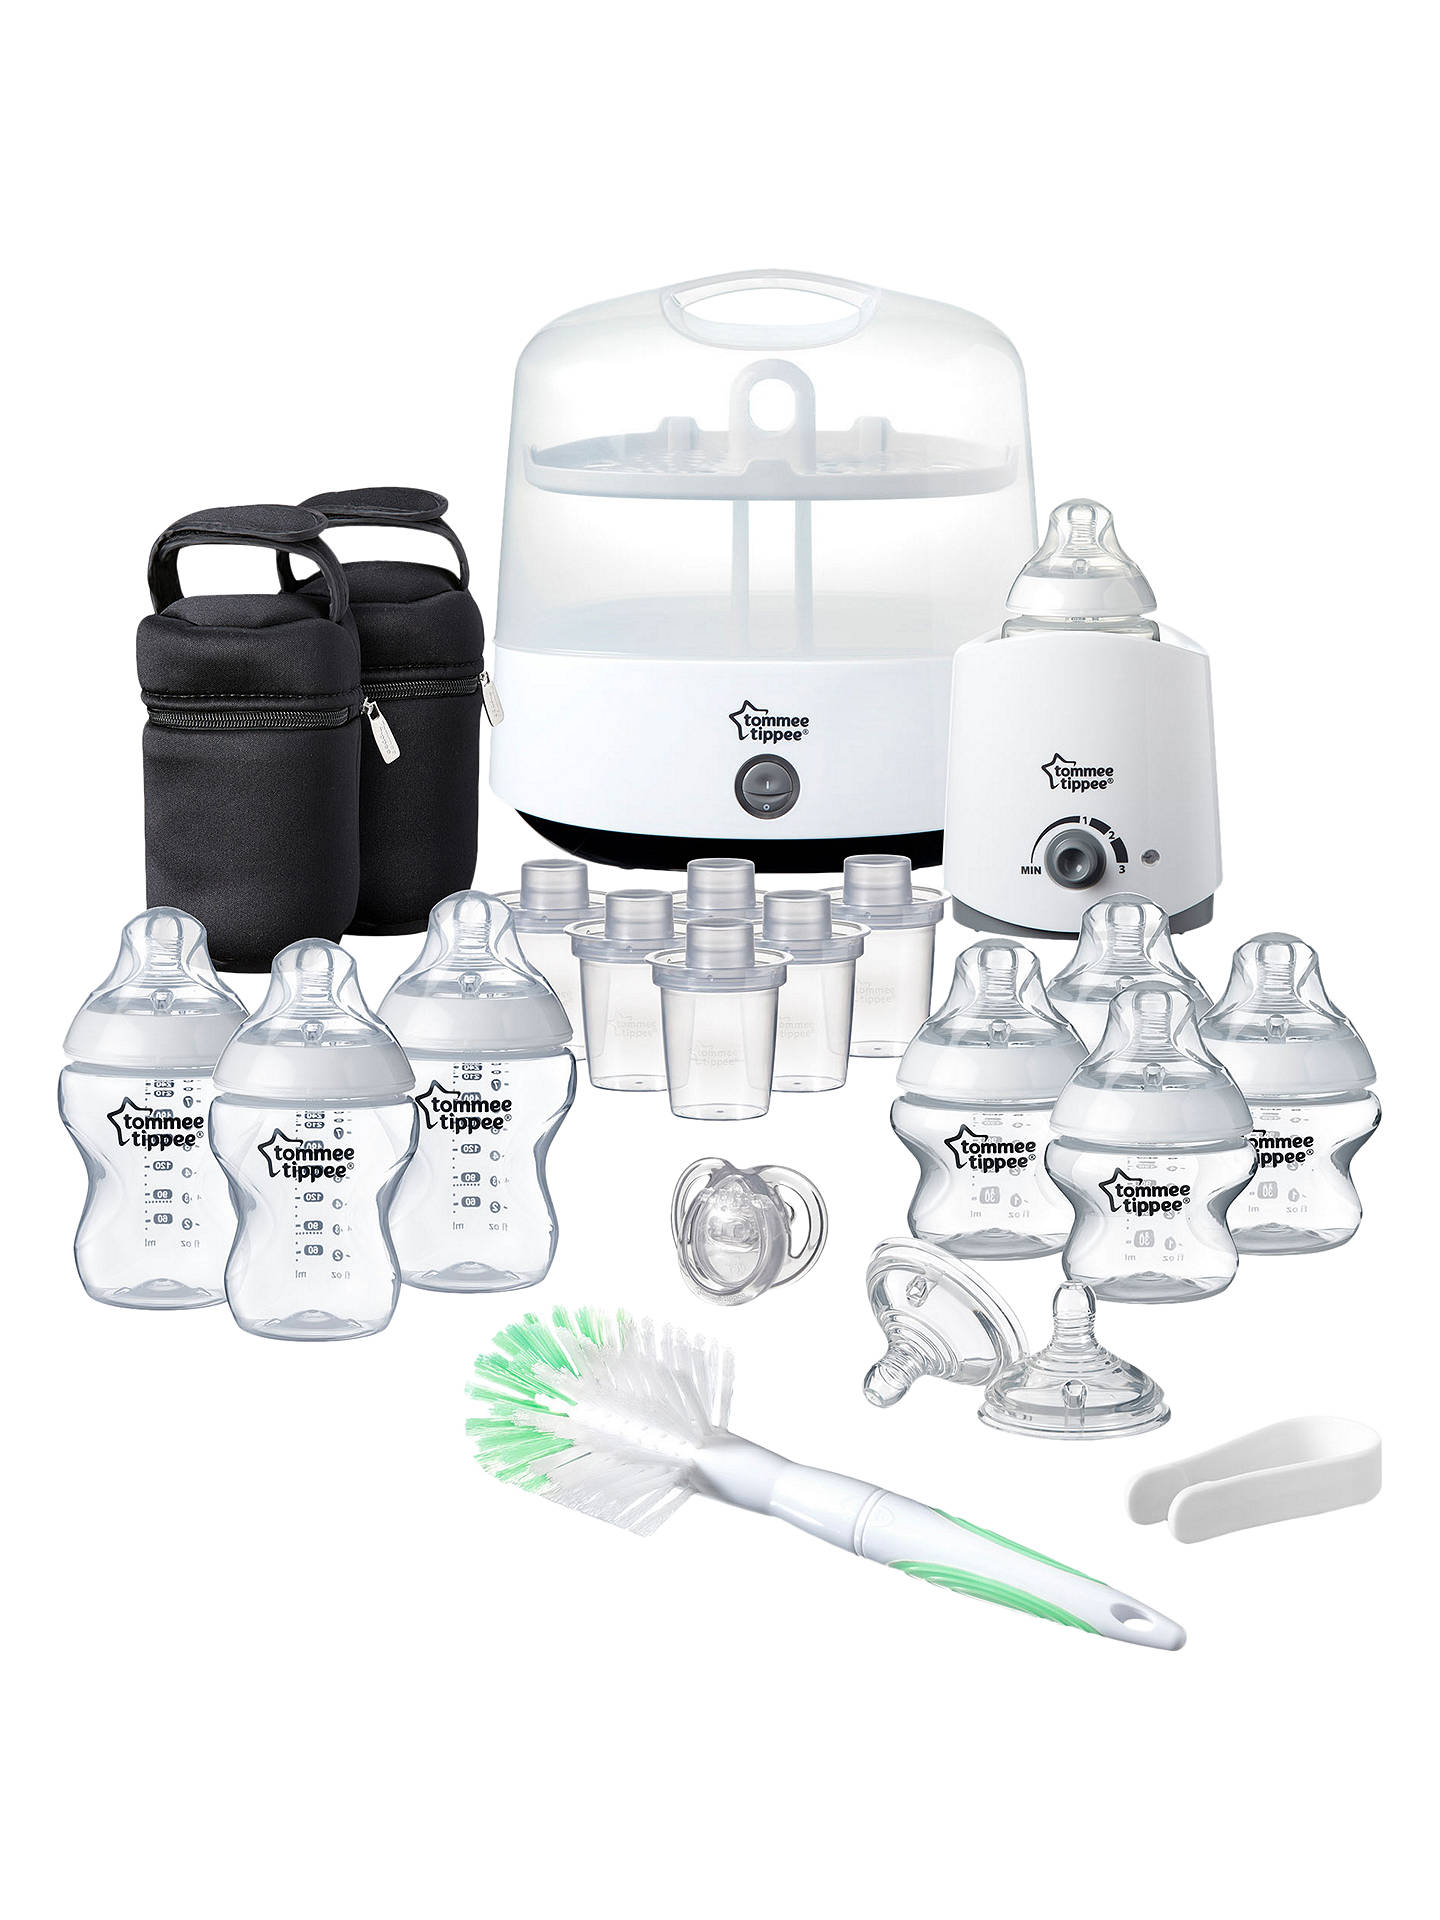 Tommee Tippee Closer To Nature Complete Feeding Set At John Lewis